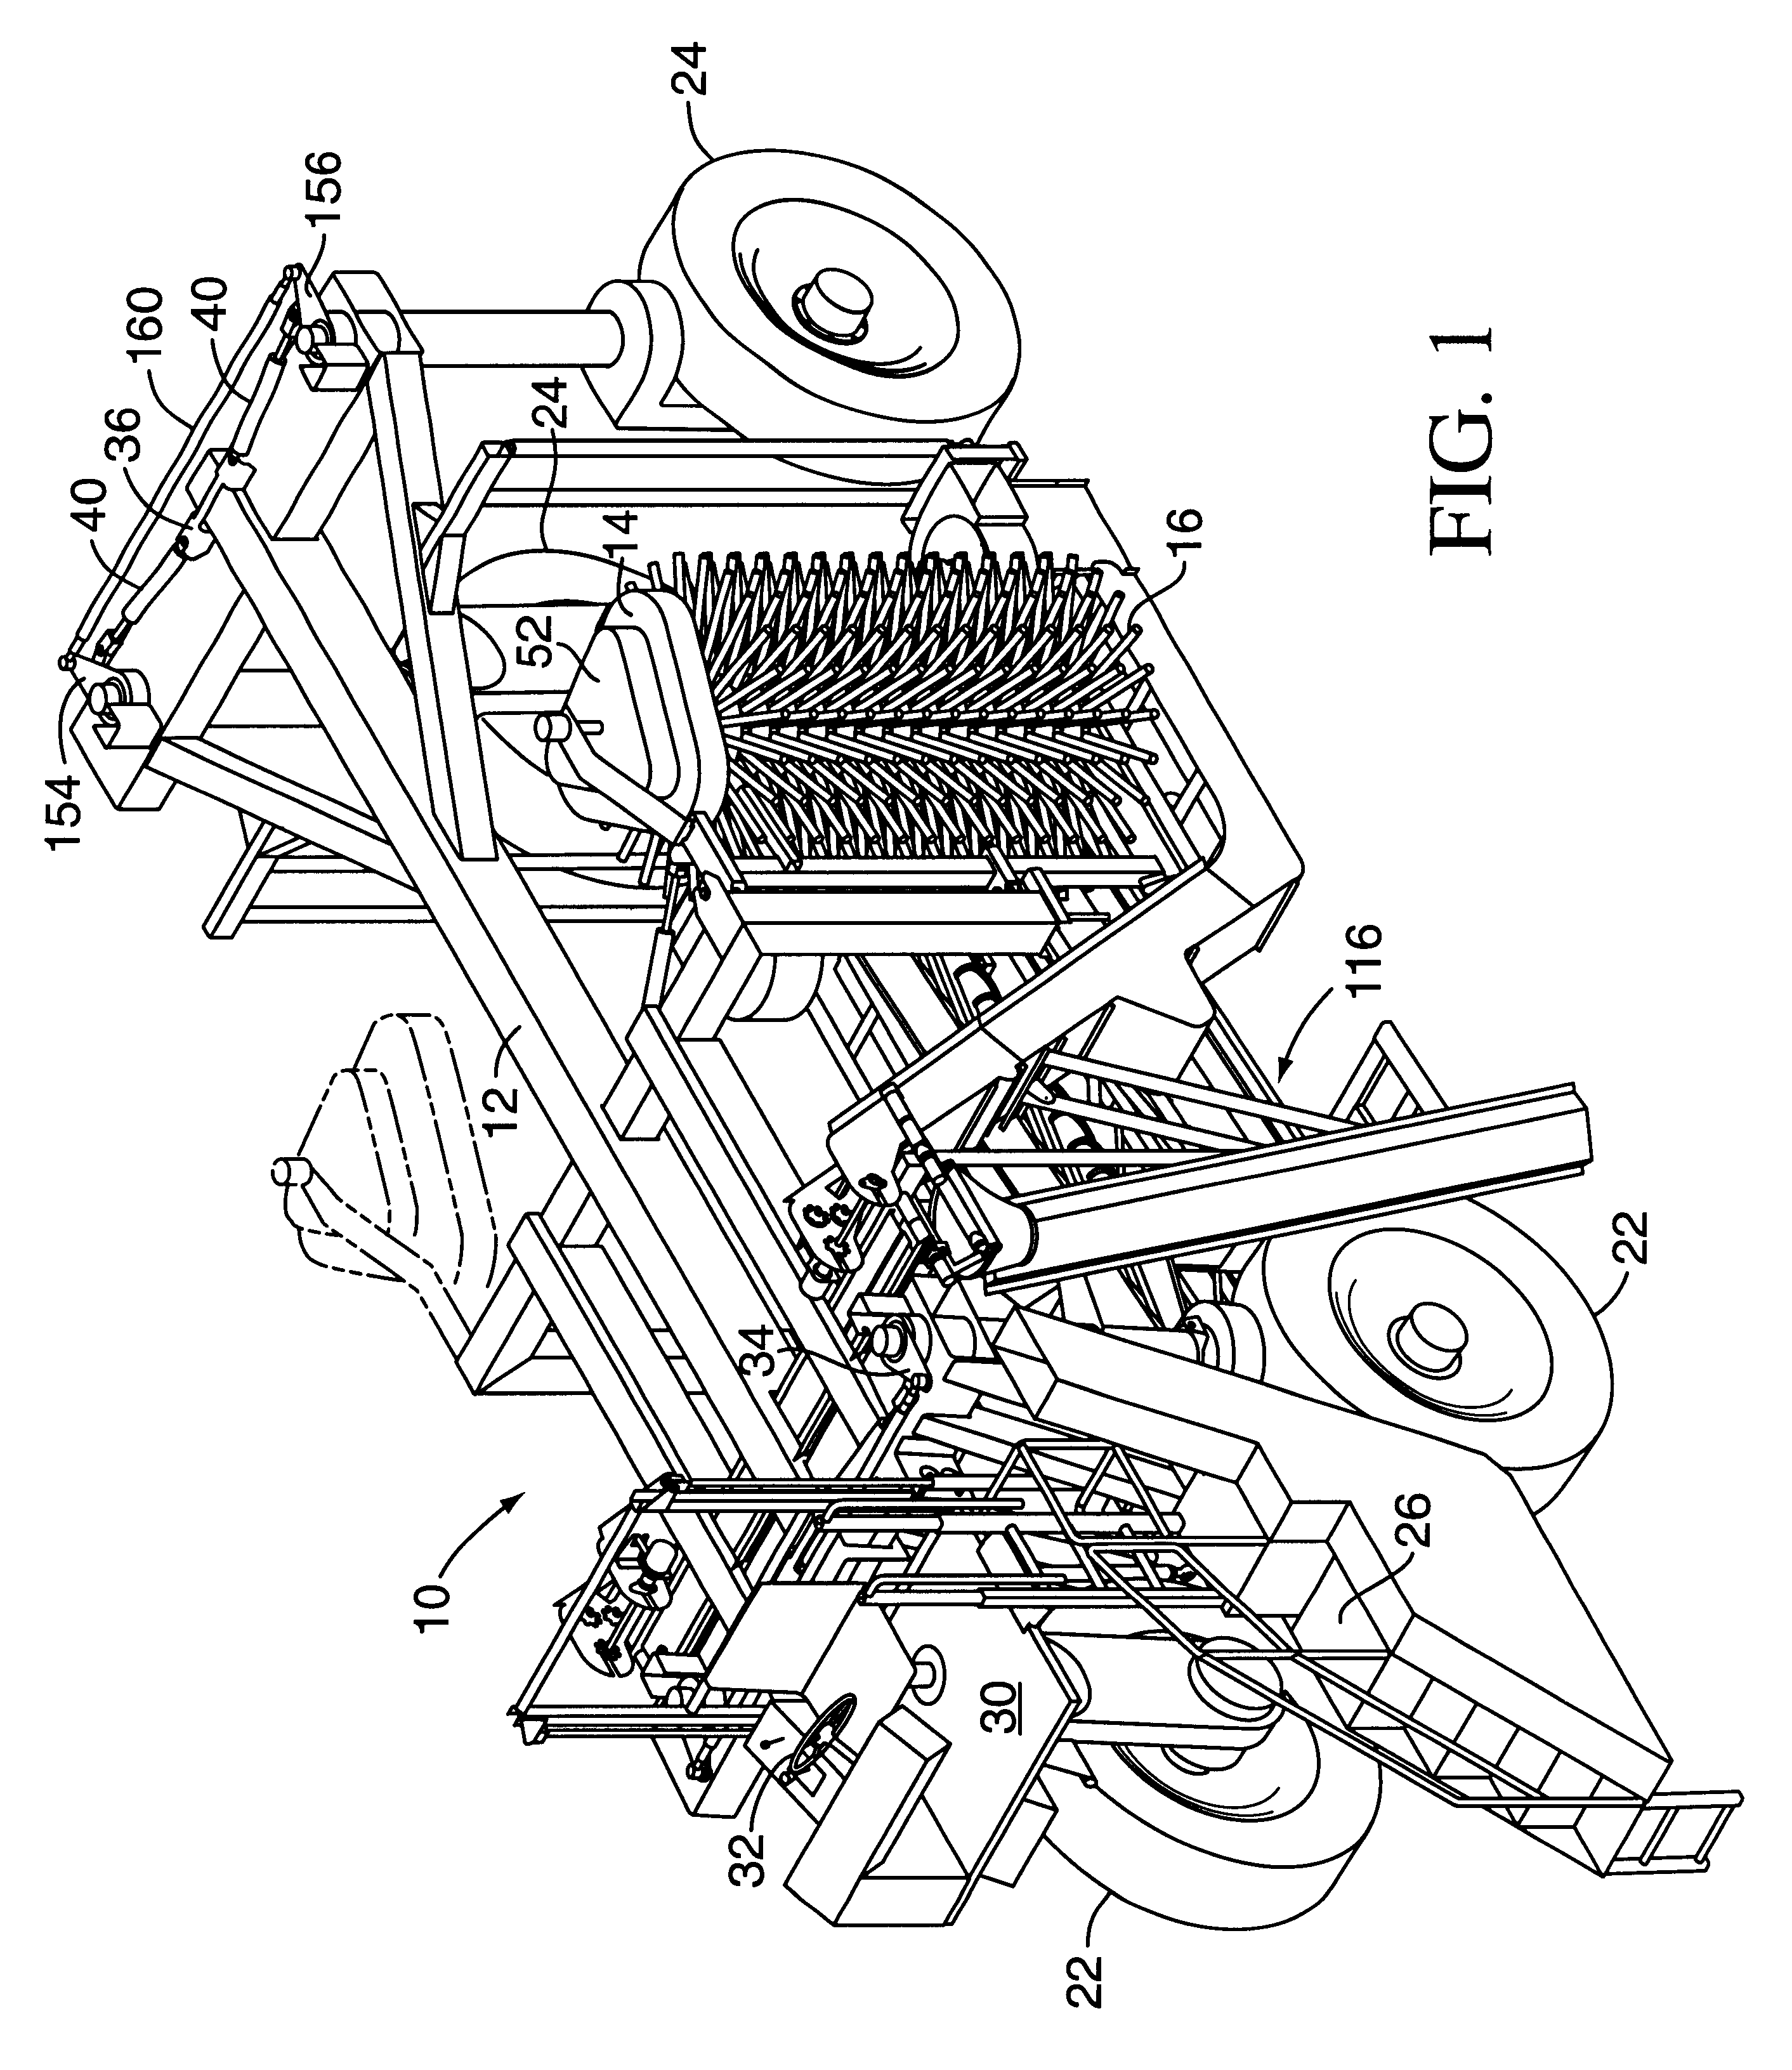 Patente Us6360518 Automatically Adjusting Shaker Head Harvester Cadillac Wiring Diagram Free Download Schematic Patent Drawing